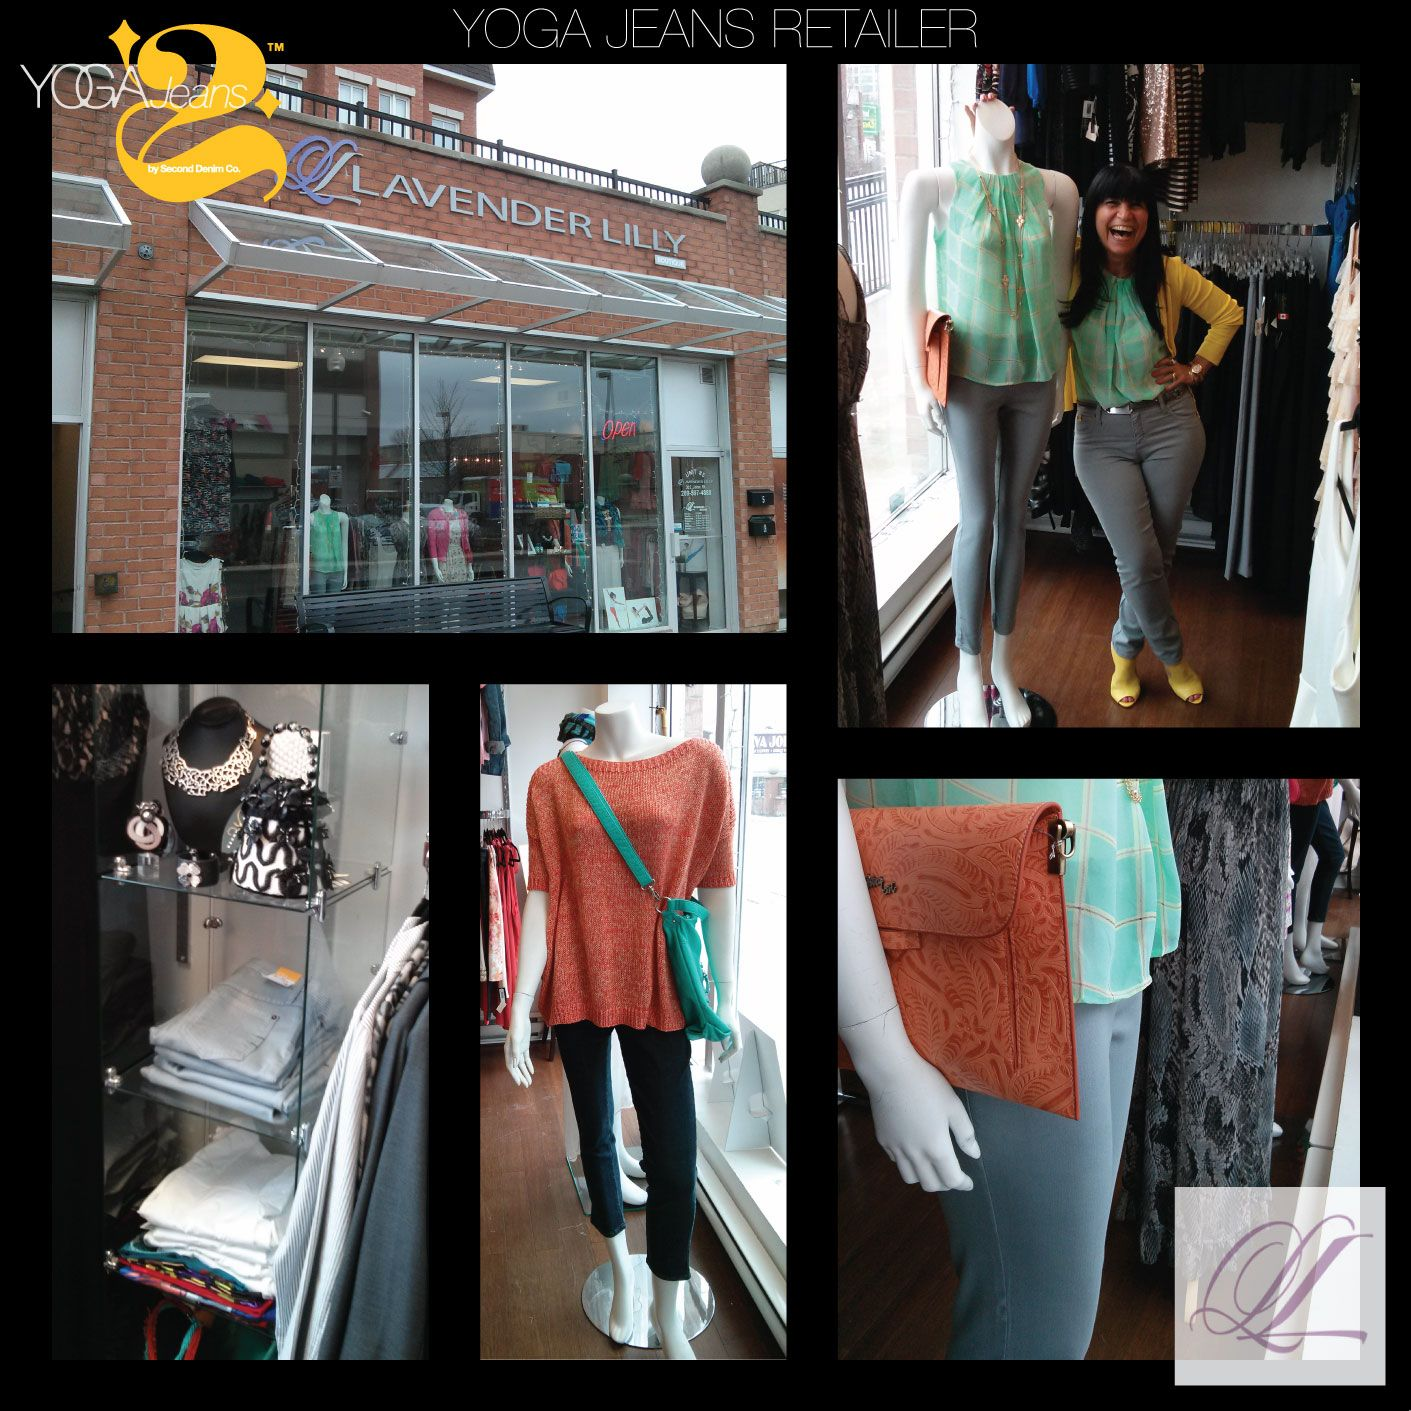 Lavender Lilly Boutique knows how to get you smiling in style this season! Their passion for Yoga Jeans and all things fashion will have you looking oh so chic in no time! Visit the boutique at 302 John Street, Thornill, ON.